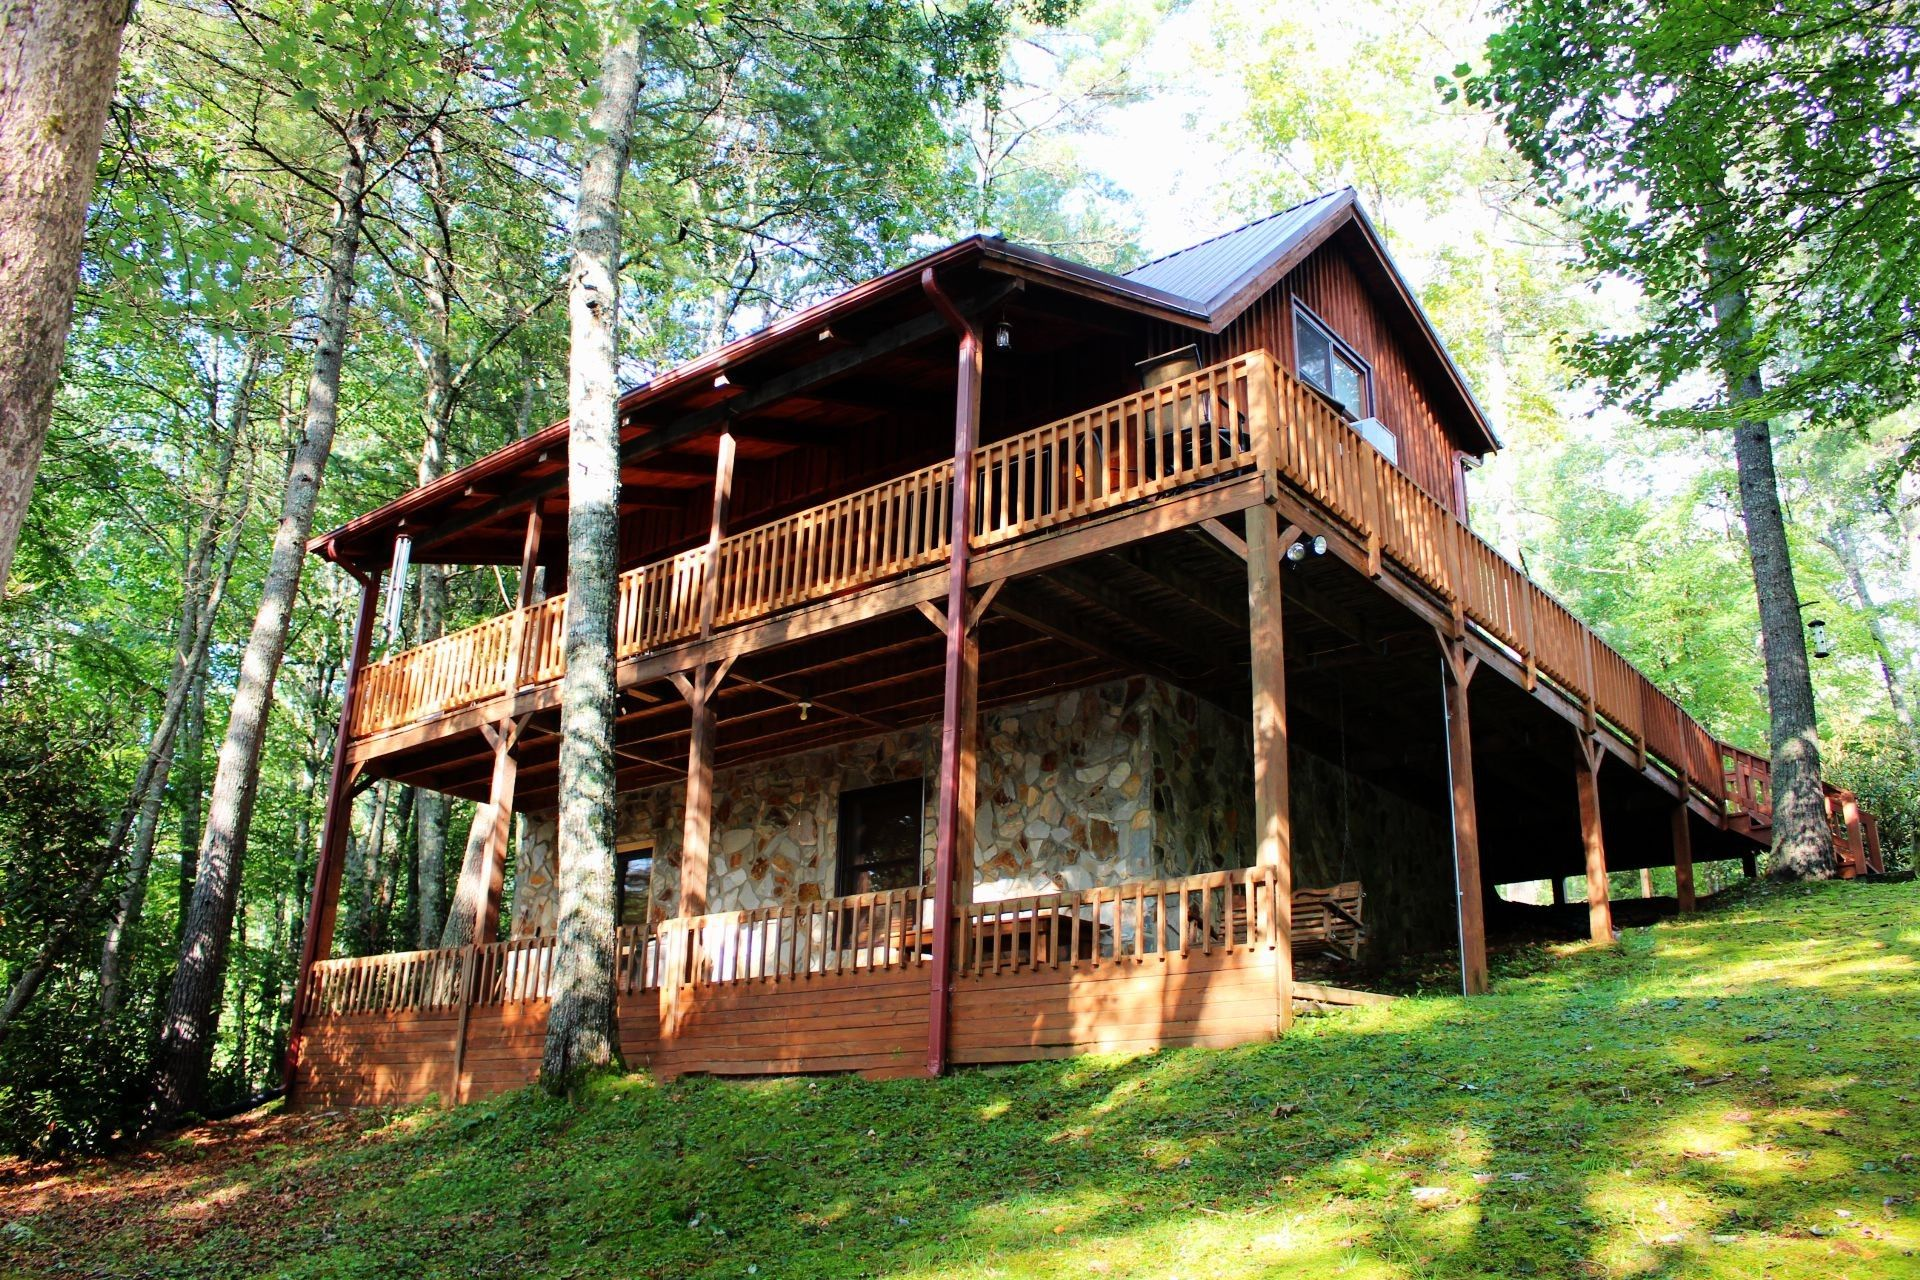 nc cabins rentals farm city north guide asheville carolina mountain places stay vacation directory to and the cottages